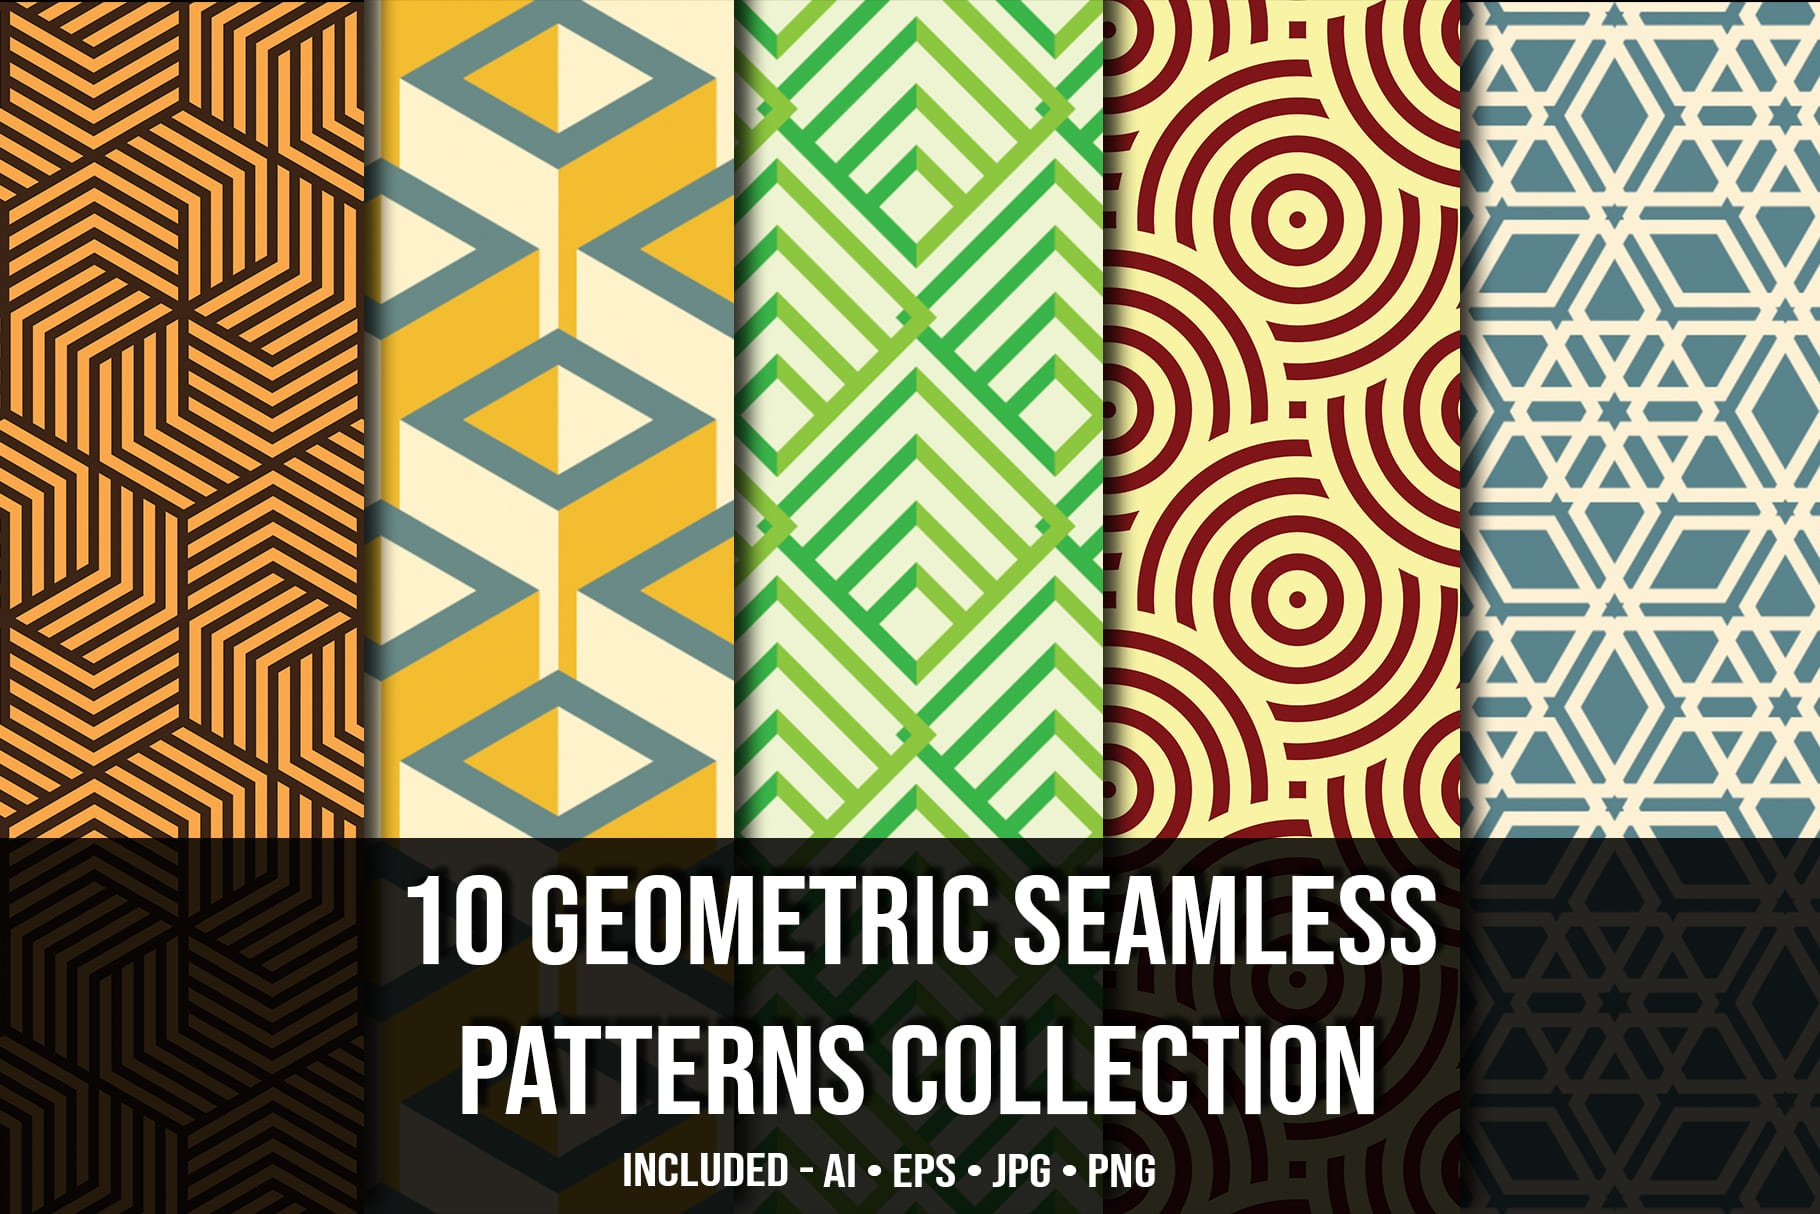 Main image.Geometric Seamless Patterns Collection.